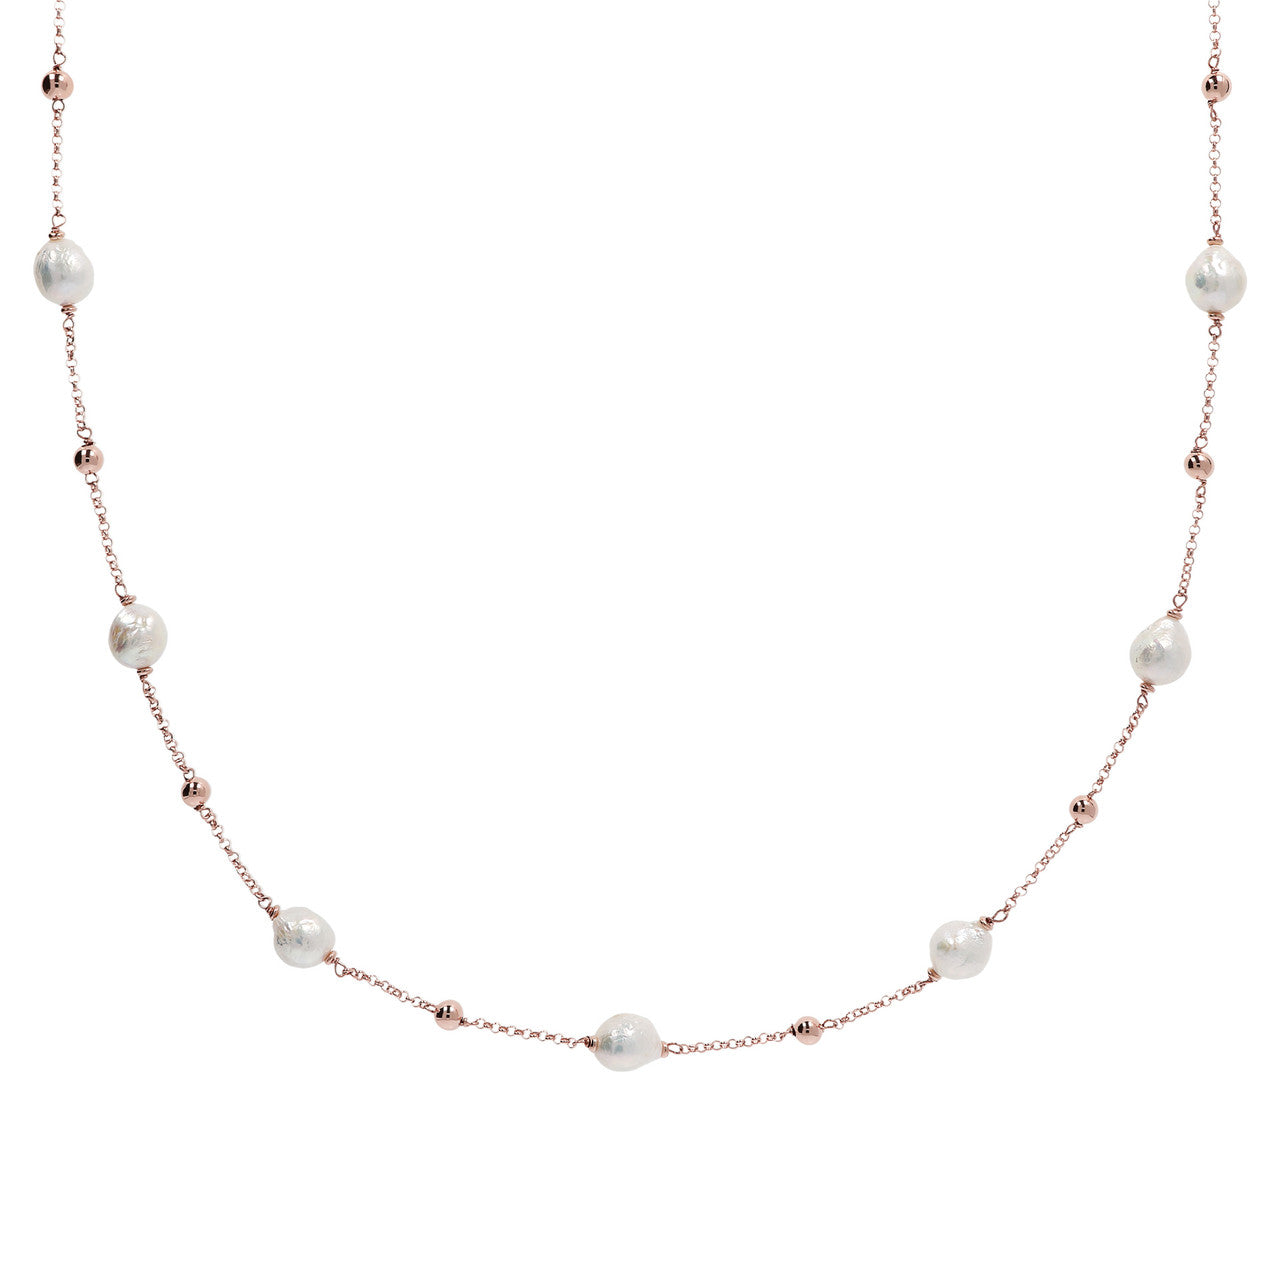 Ming Pearls Stationary Necklace Long